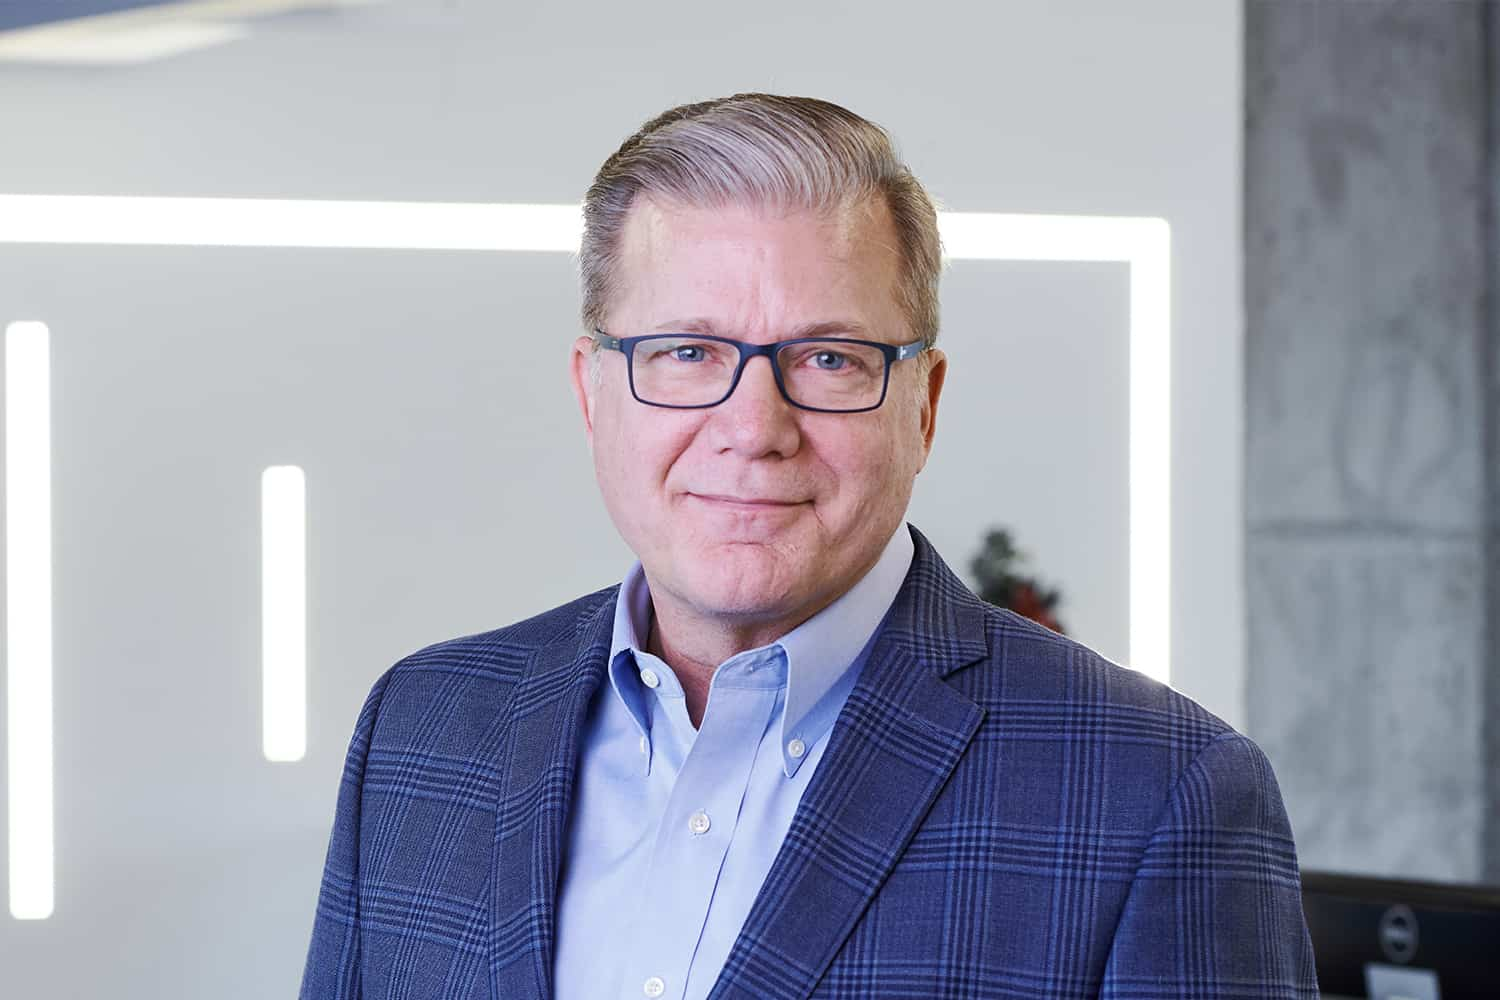 Dave Miller, Discovery Practice Director